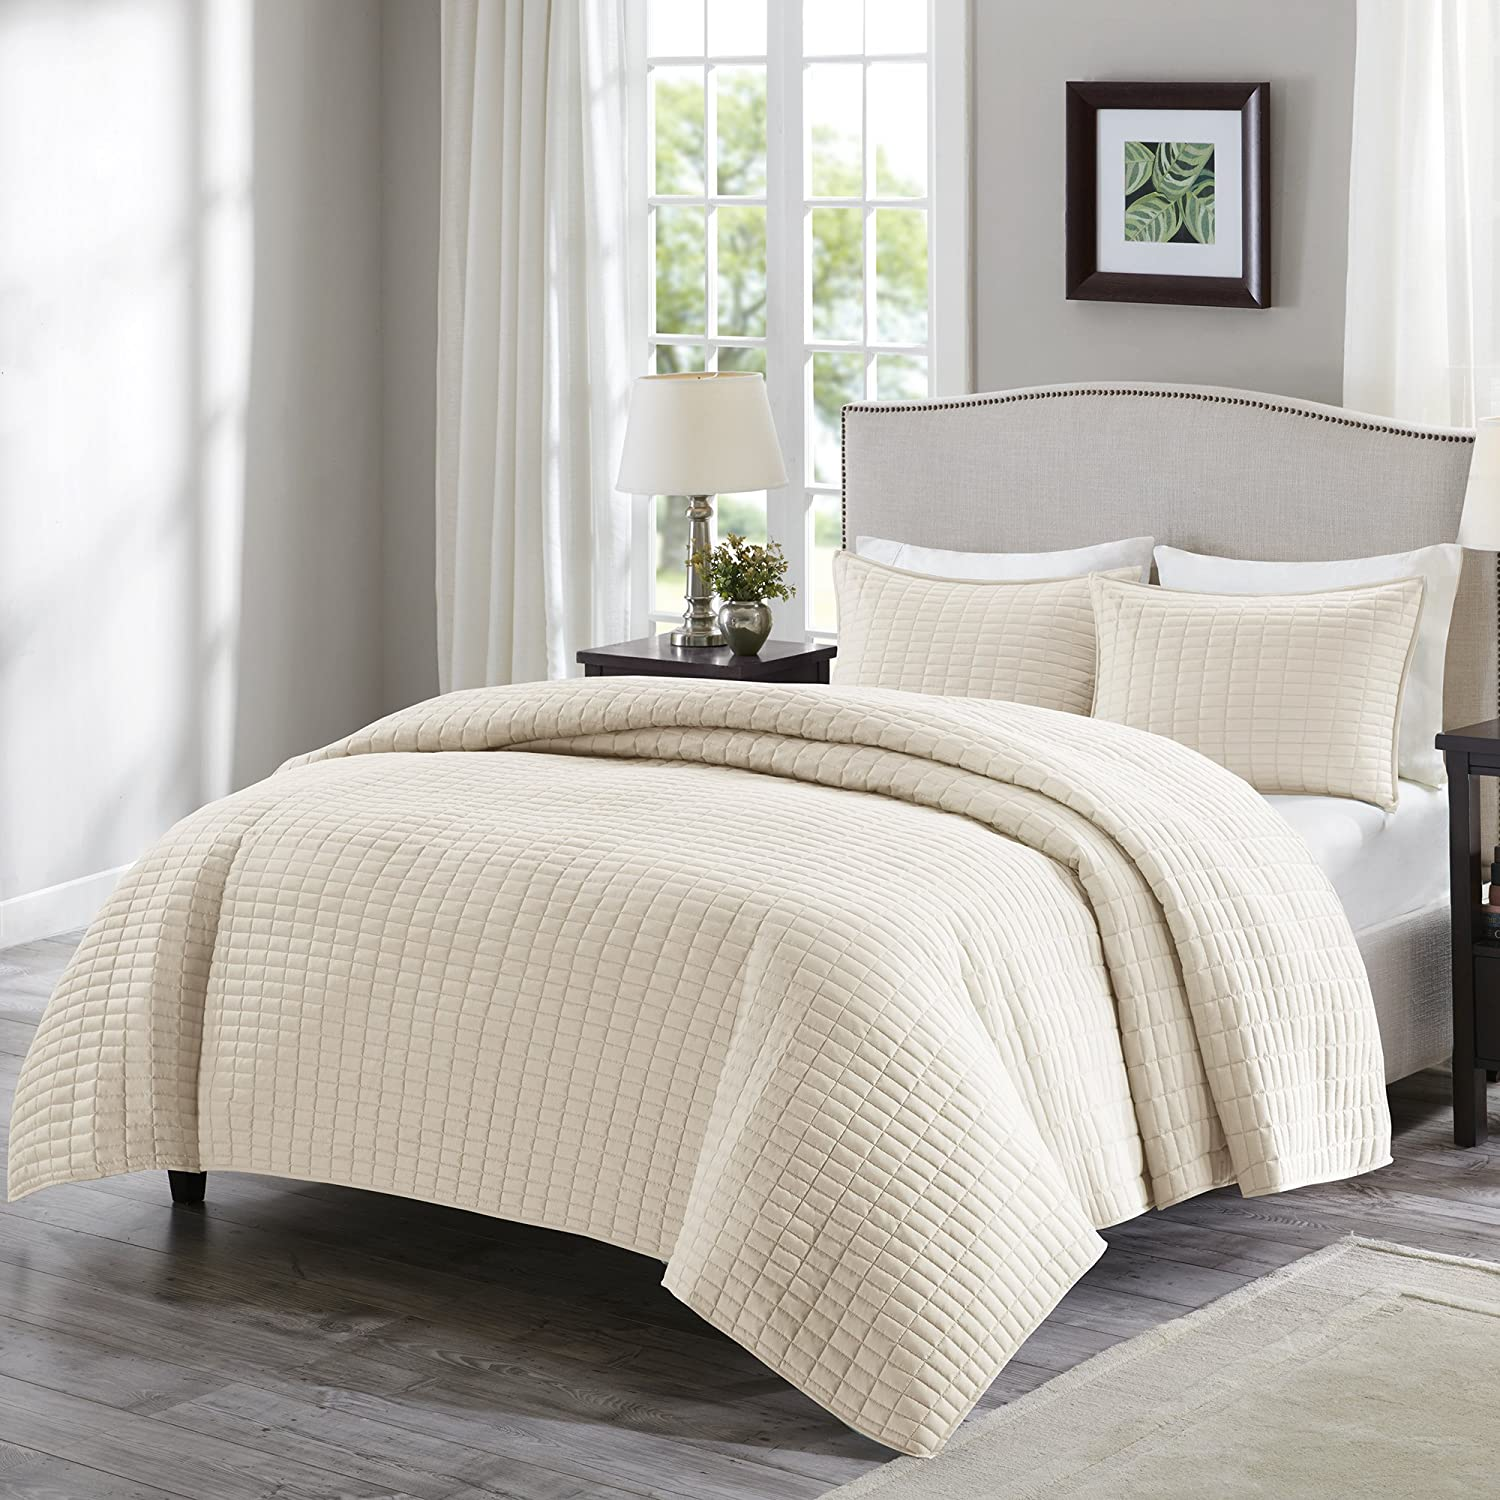 Comfort Spaces - Kienna Quilt Mini Set - 3 Piece - Ivory - Stitched Quilt Pattern